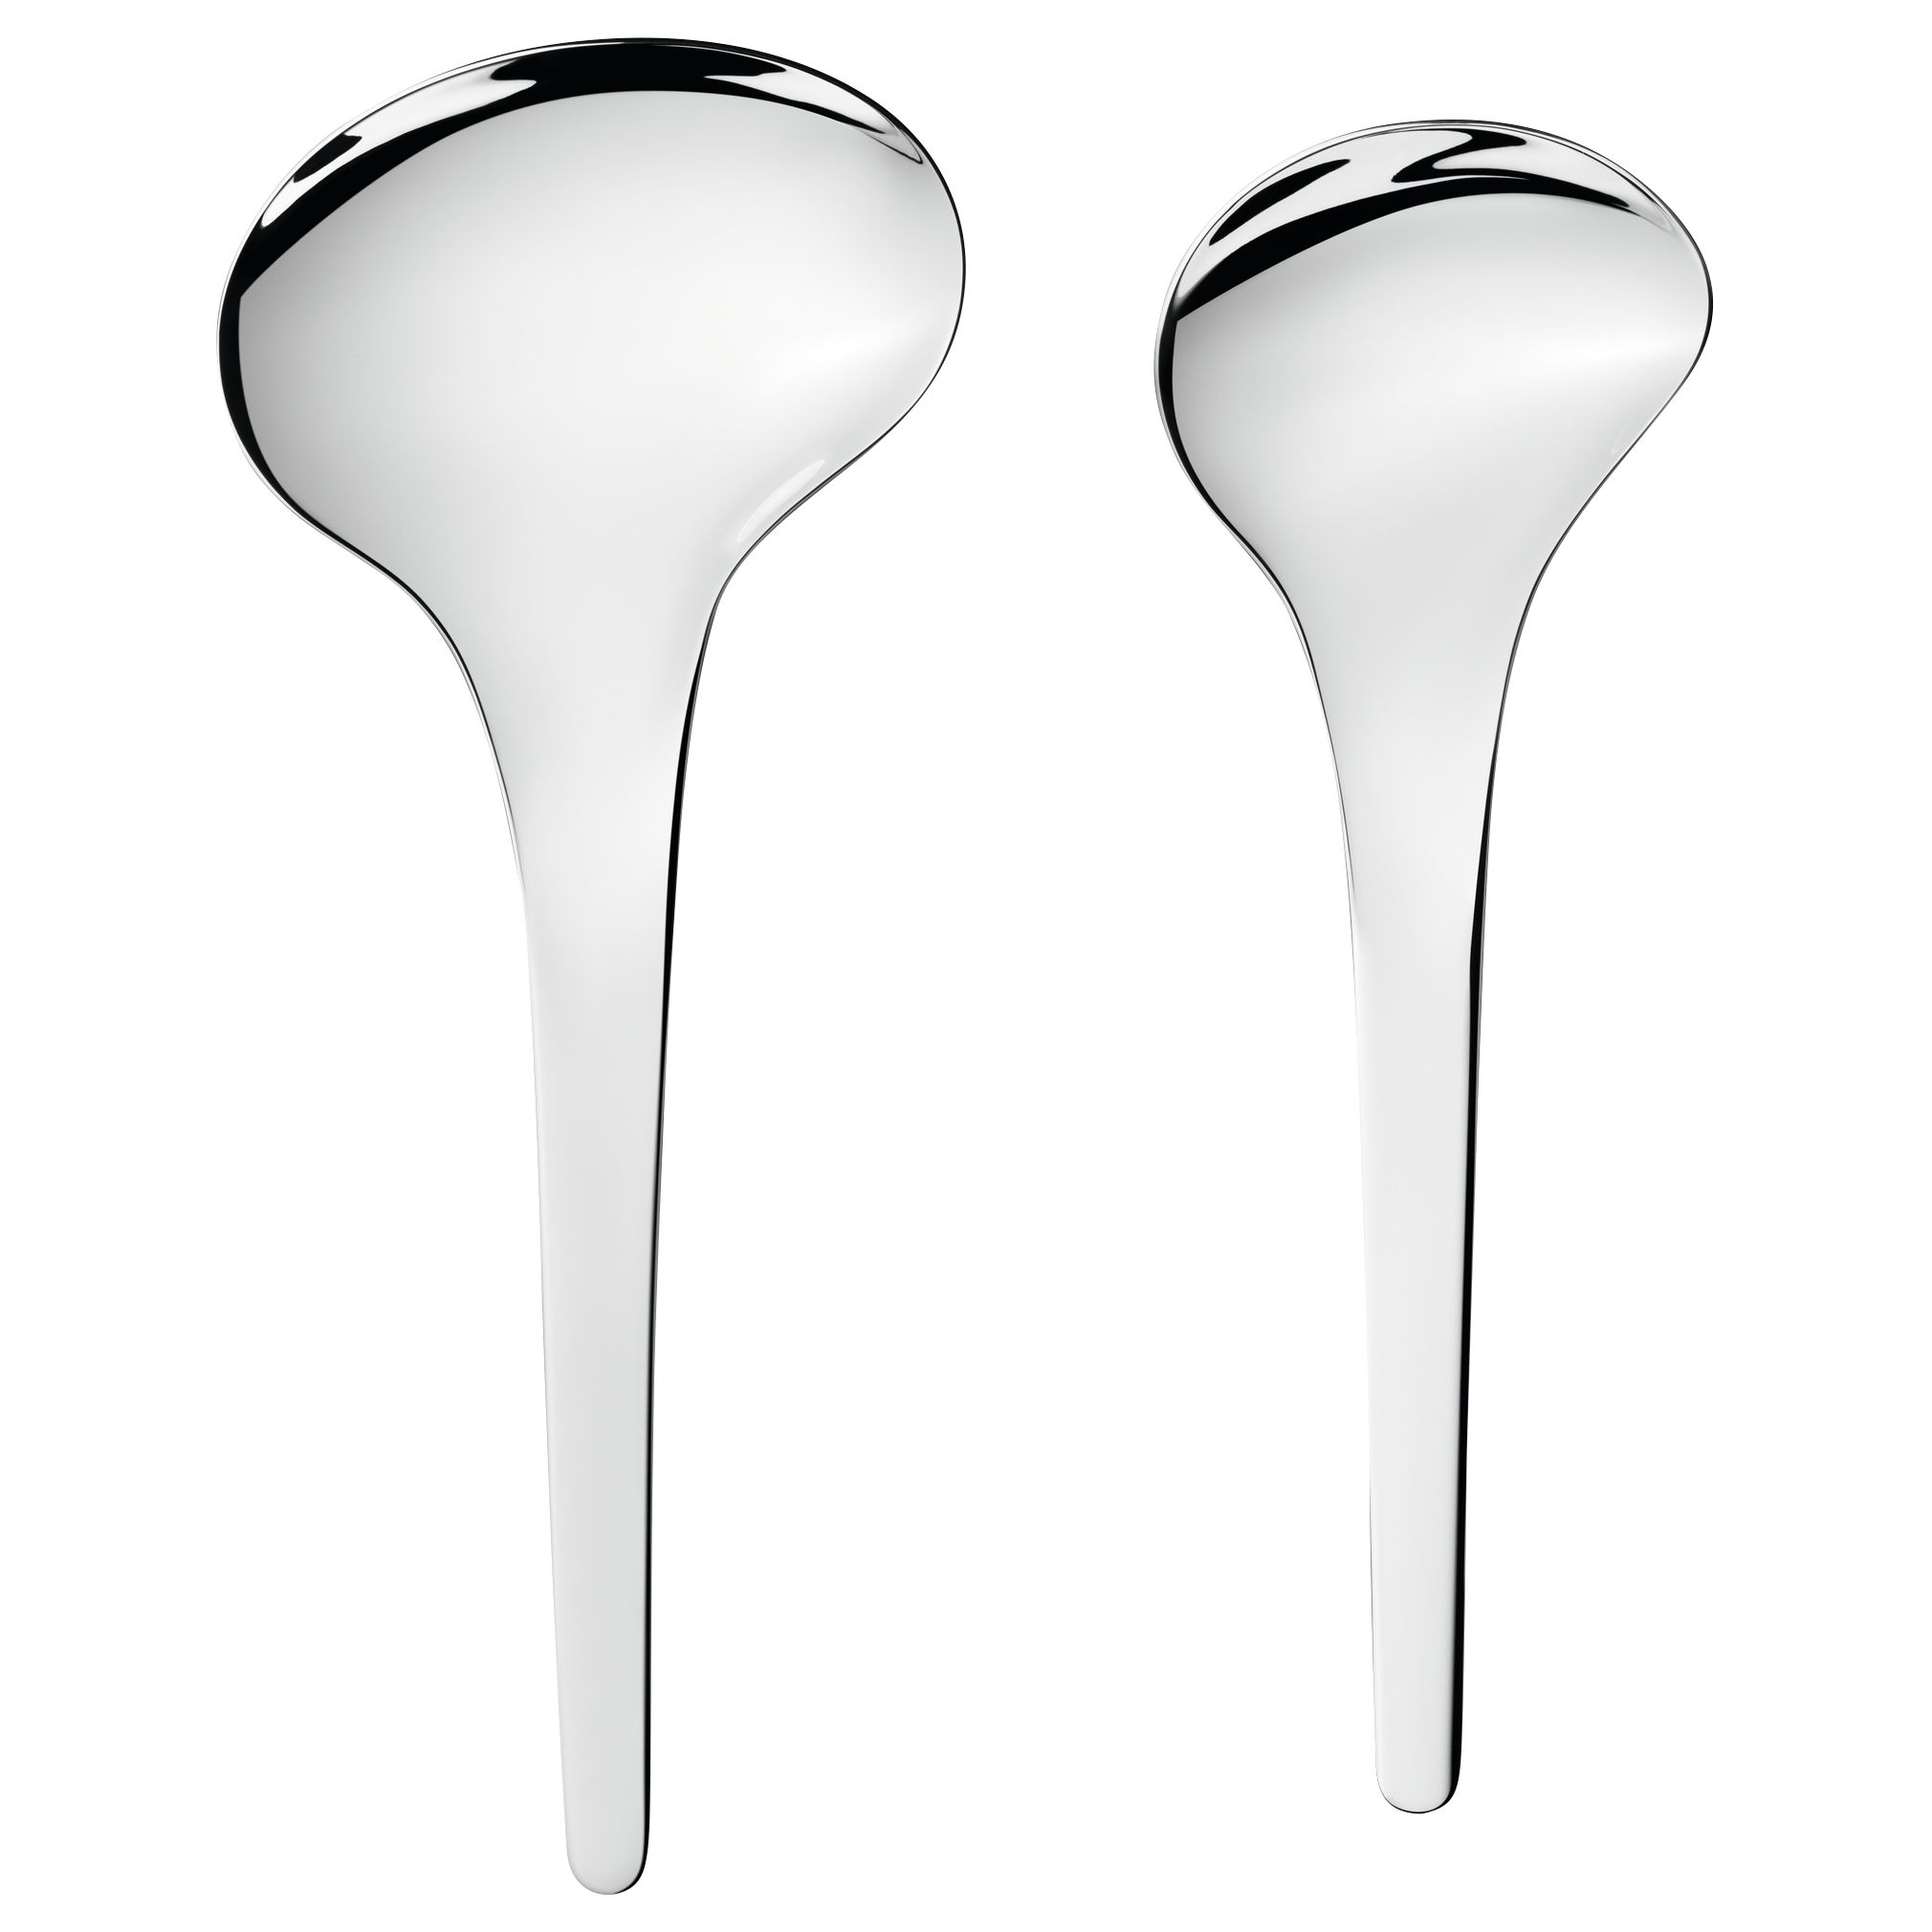 Georg Jensen Georg Jensen Bloom Serving Spoons, Set of 2